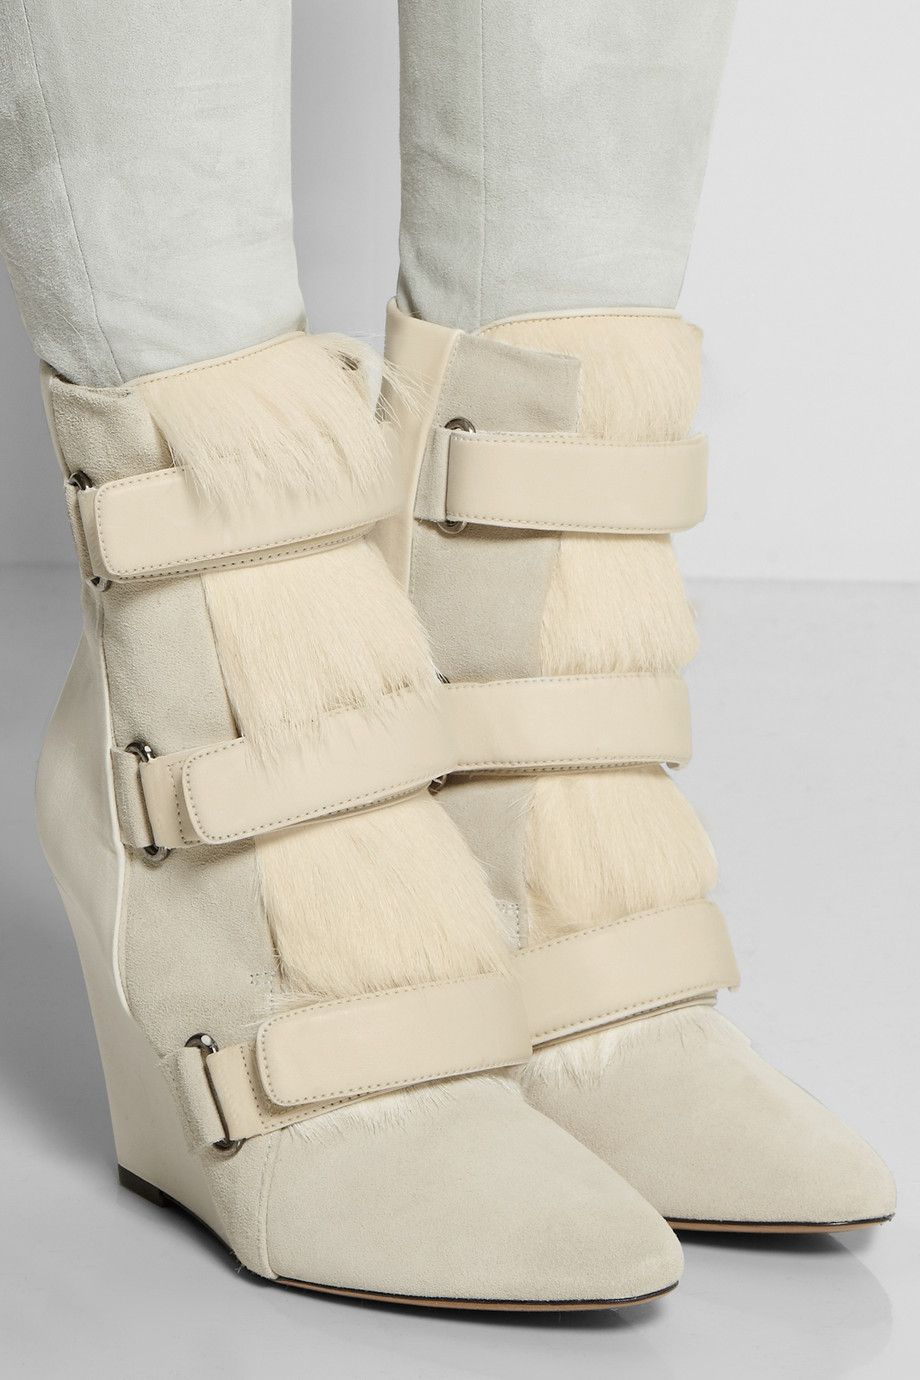 Isabel Marant|Pierce suede, leather and calf hair wedge boots|NET-A-PORTER.COM